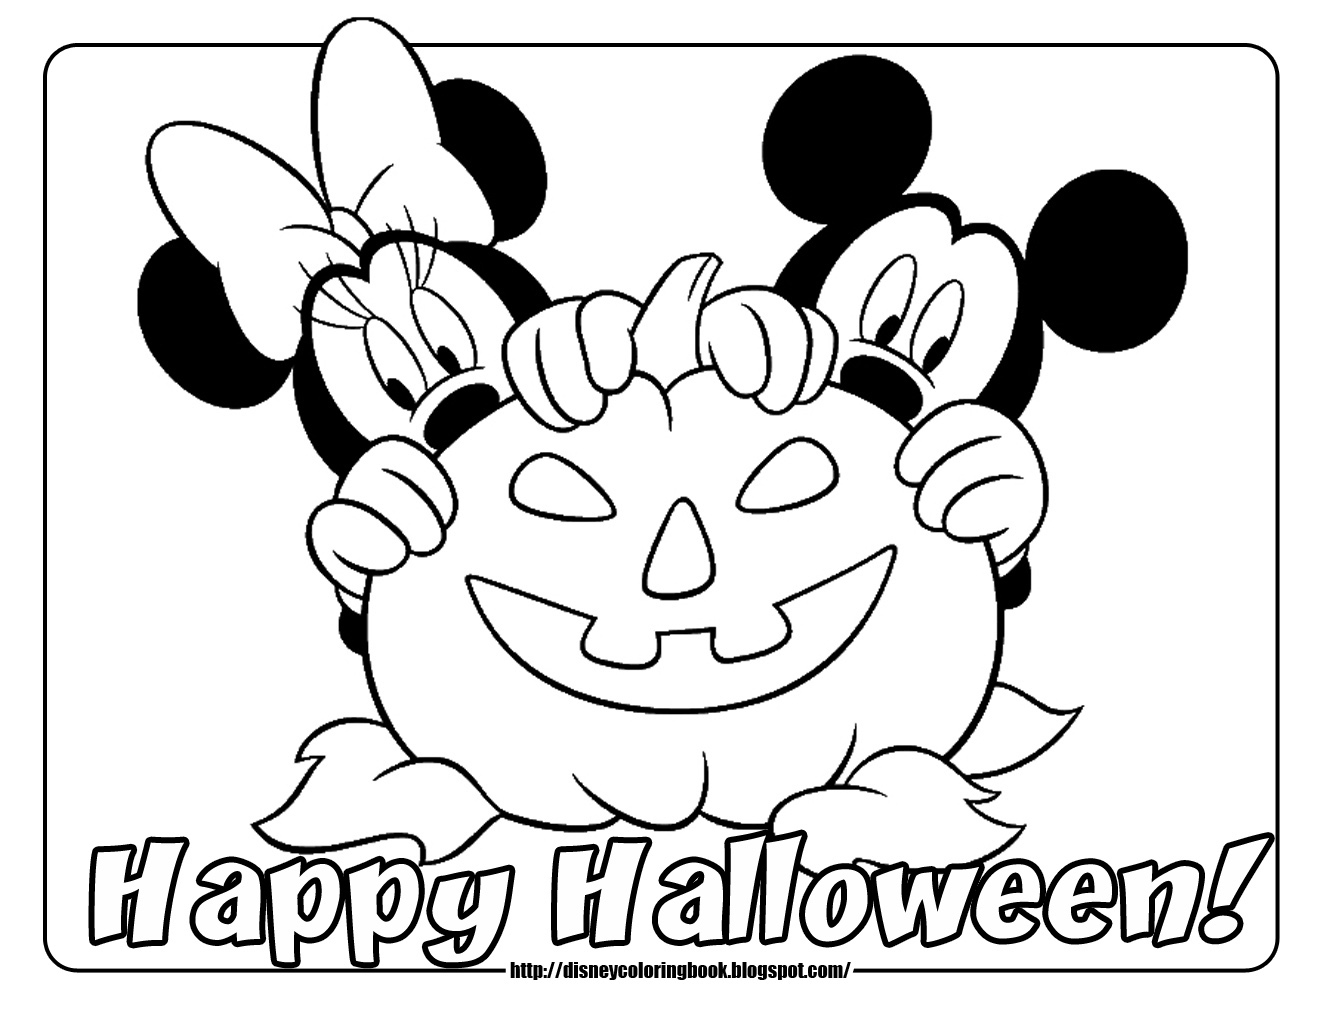 1320x1020 Interesting Halloween Coloring Pages Mickey Mouse Minnie Mouse